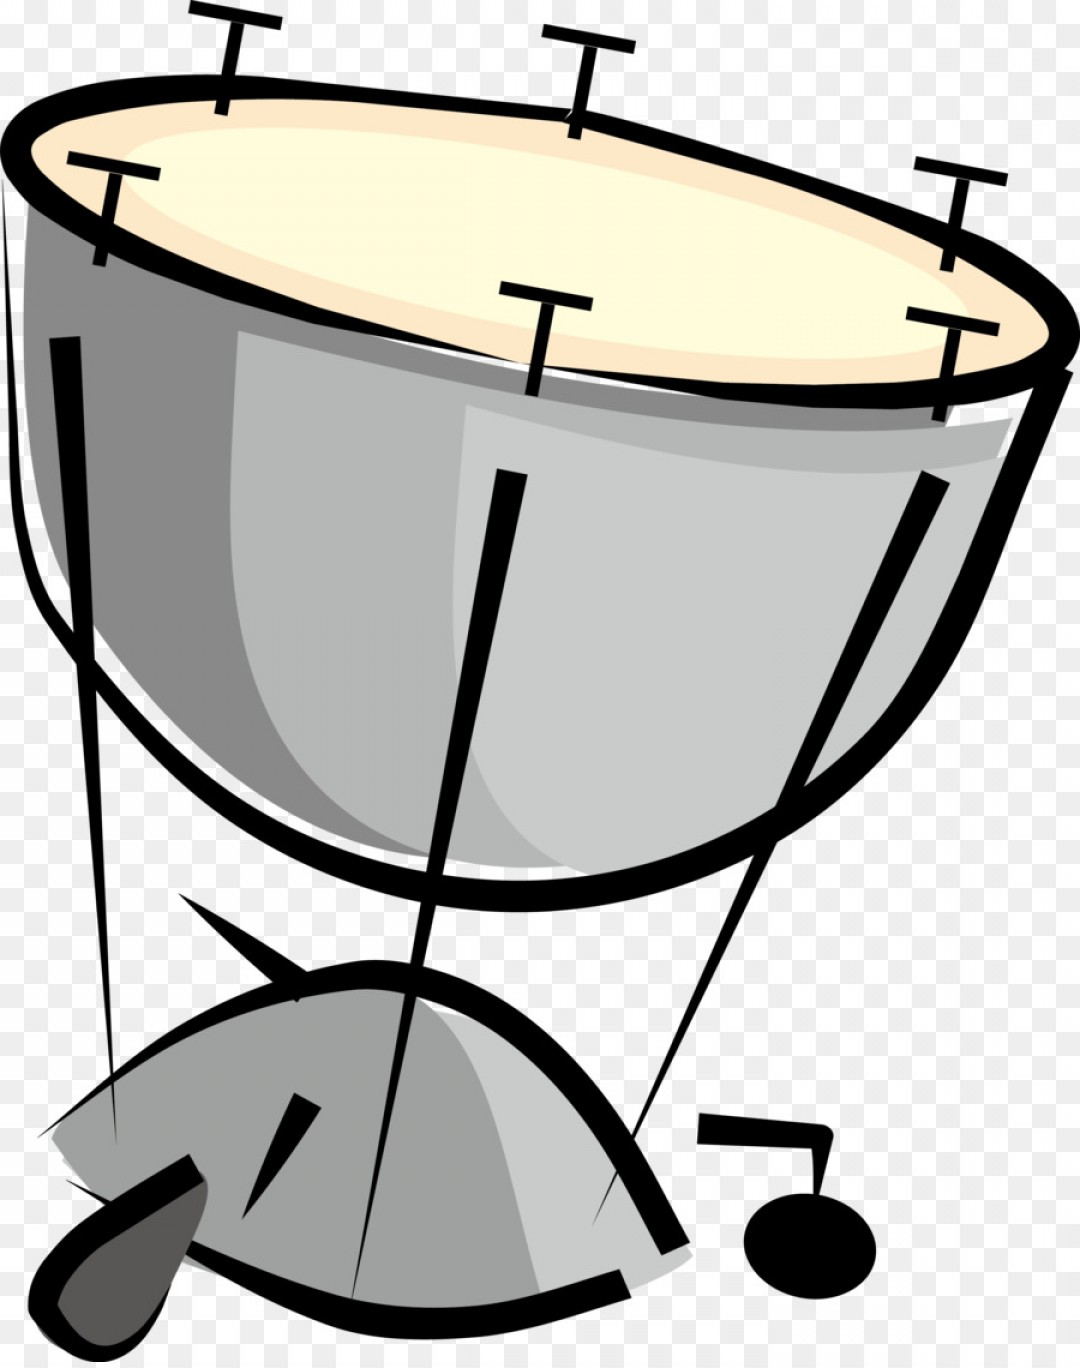 Drum Vector Art: Png Musical Instrument Drum Timpani Percussion Cartoon